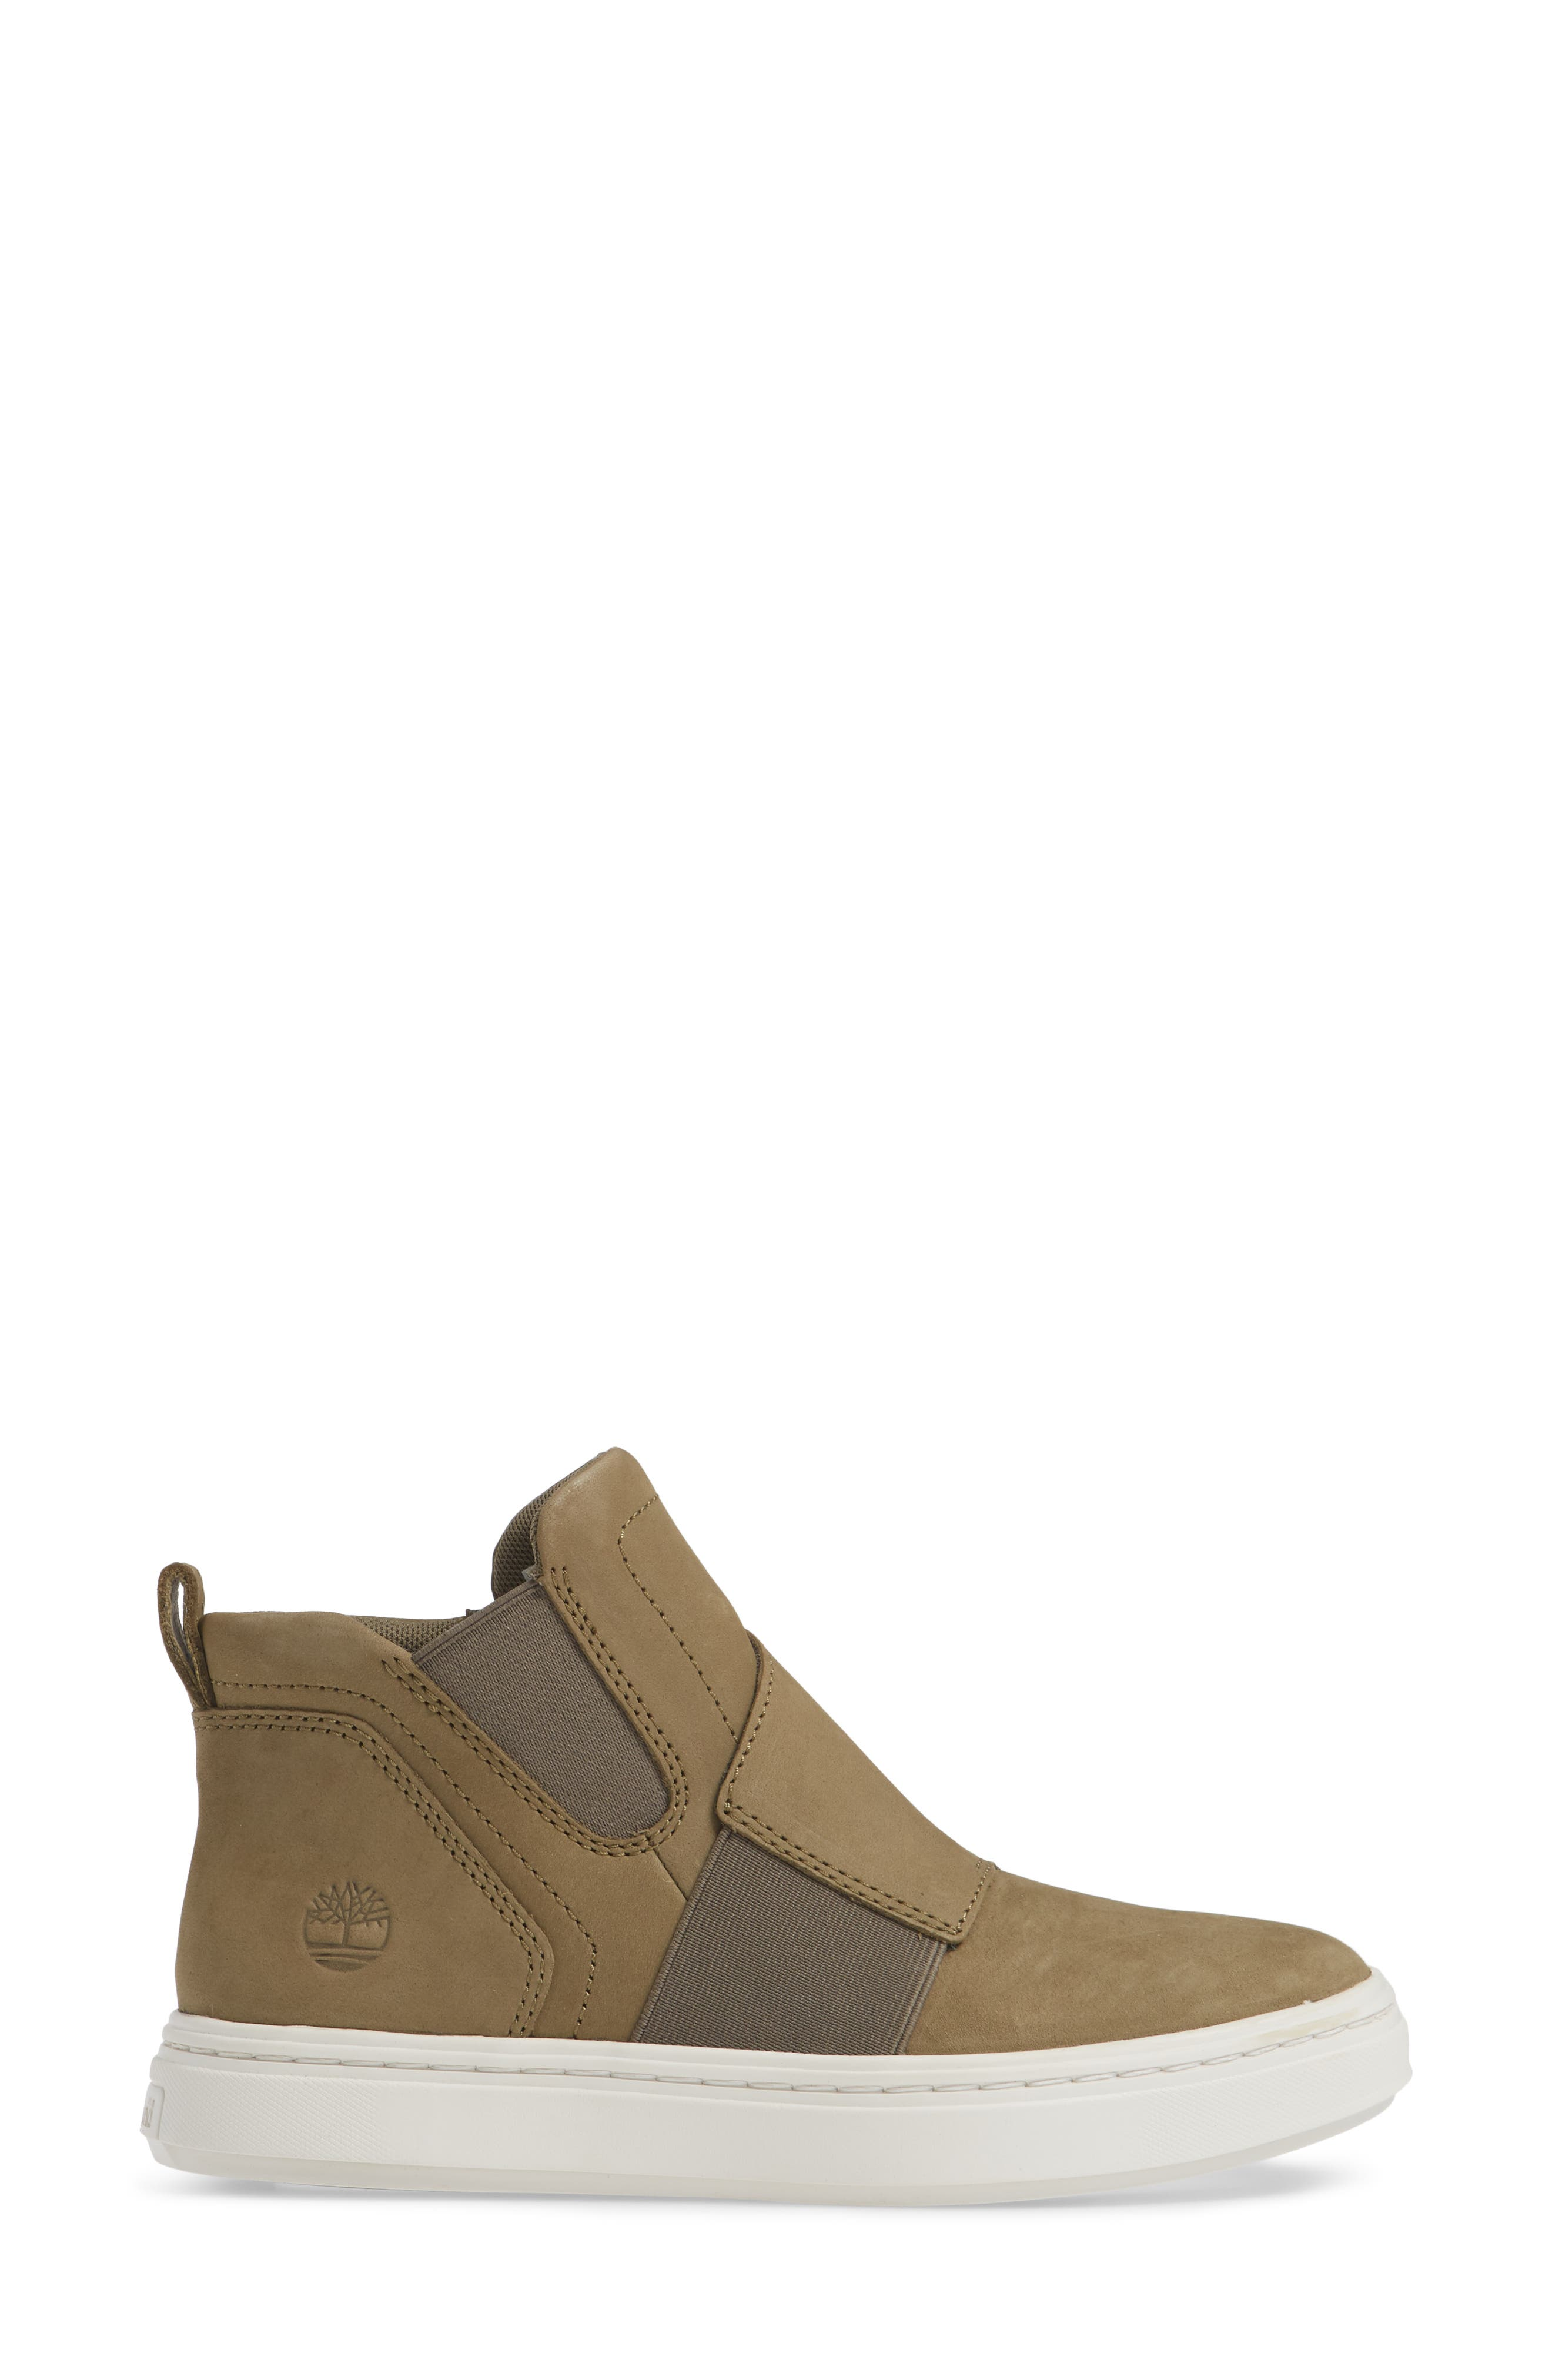 Londyn Chelsea Sneaker Boot,                             Alternate thumbnail 3, color,                             330